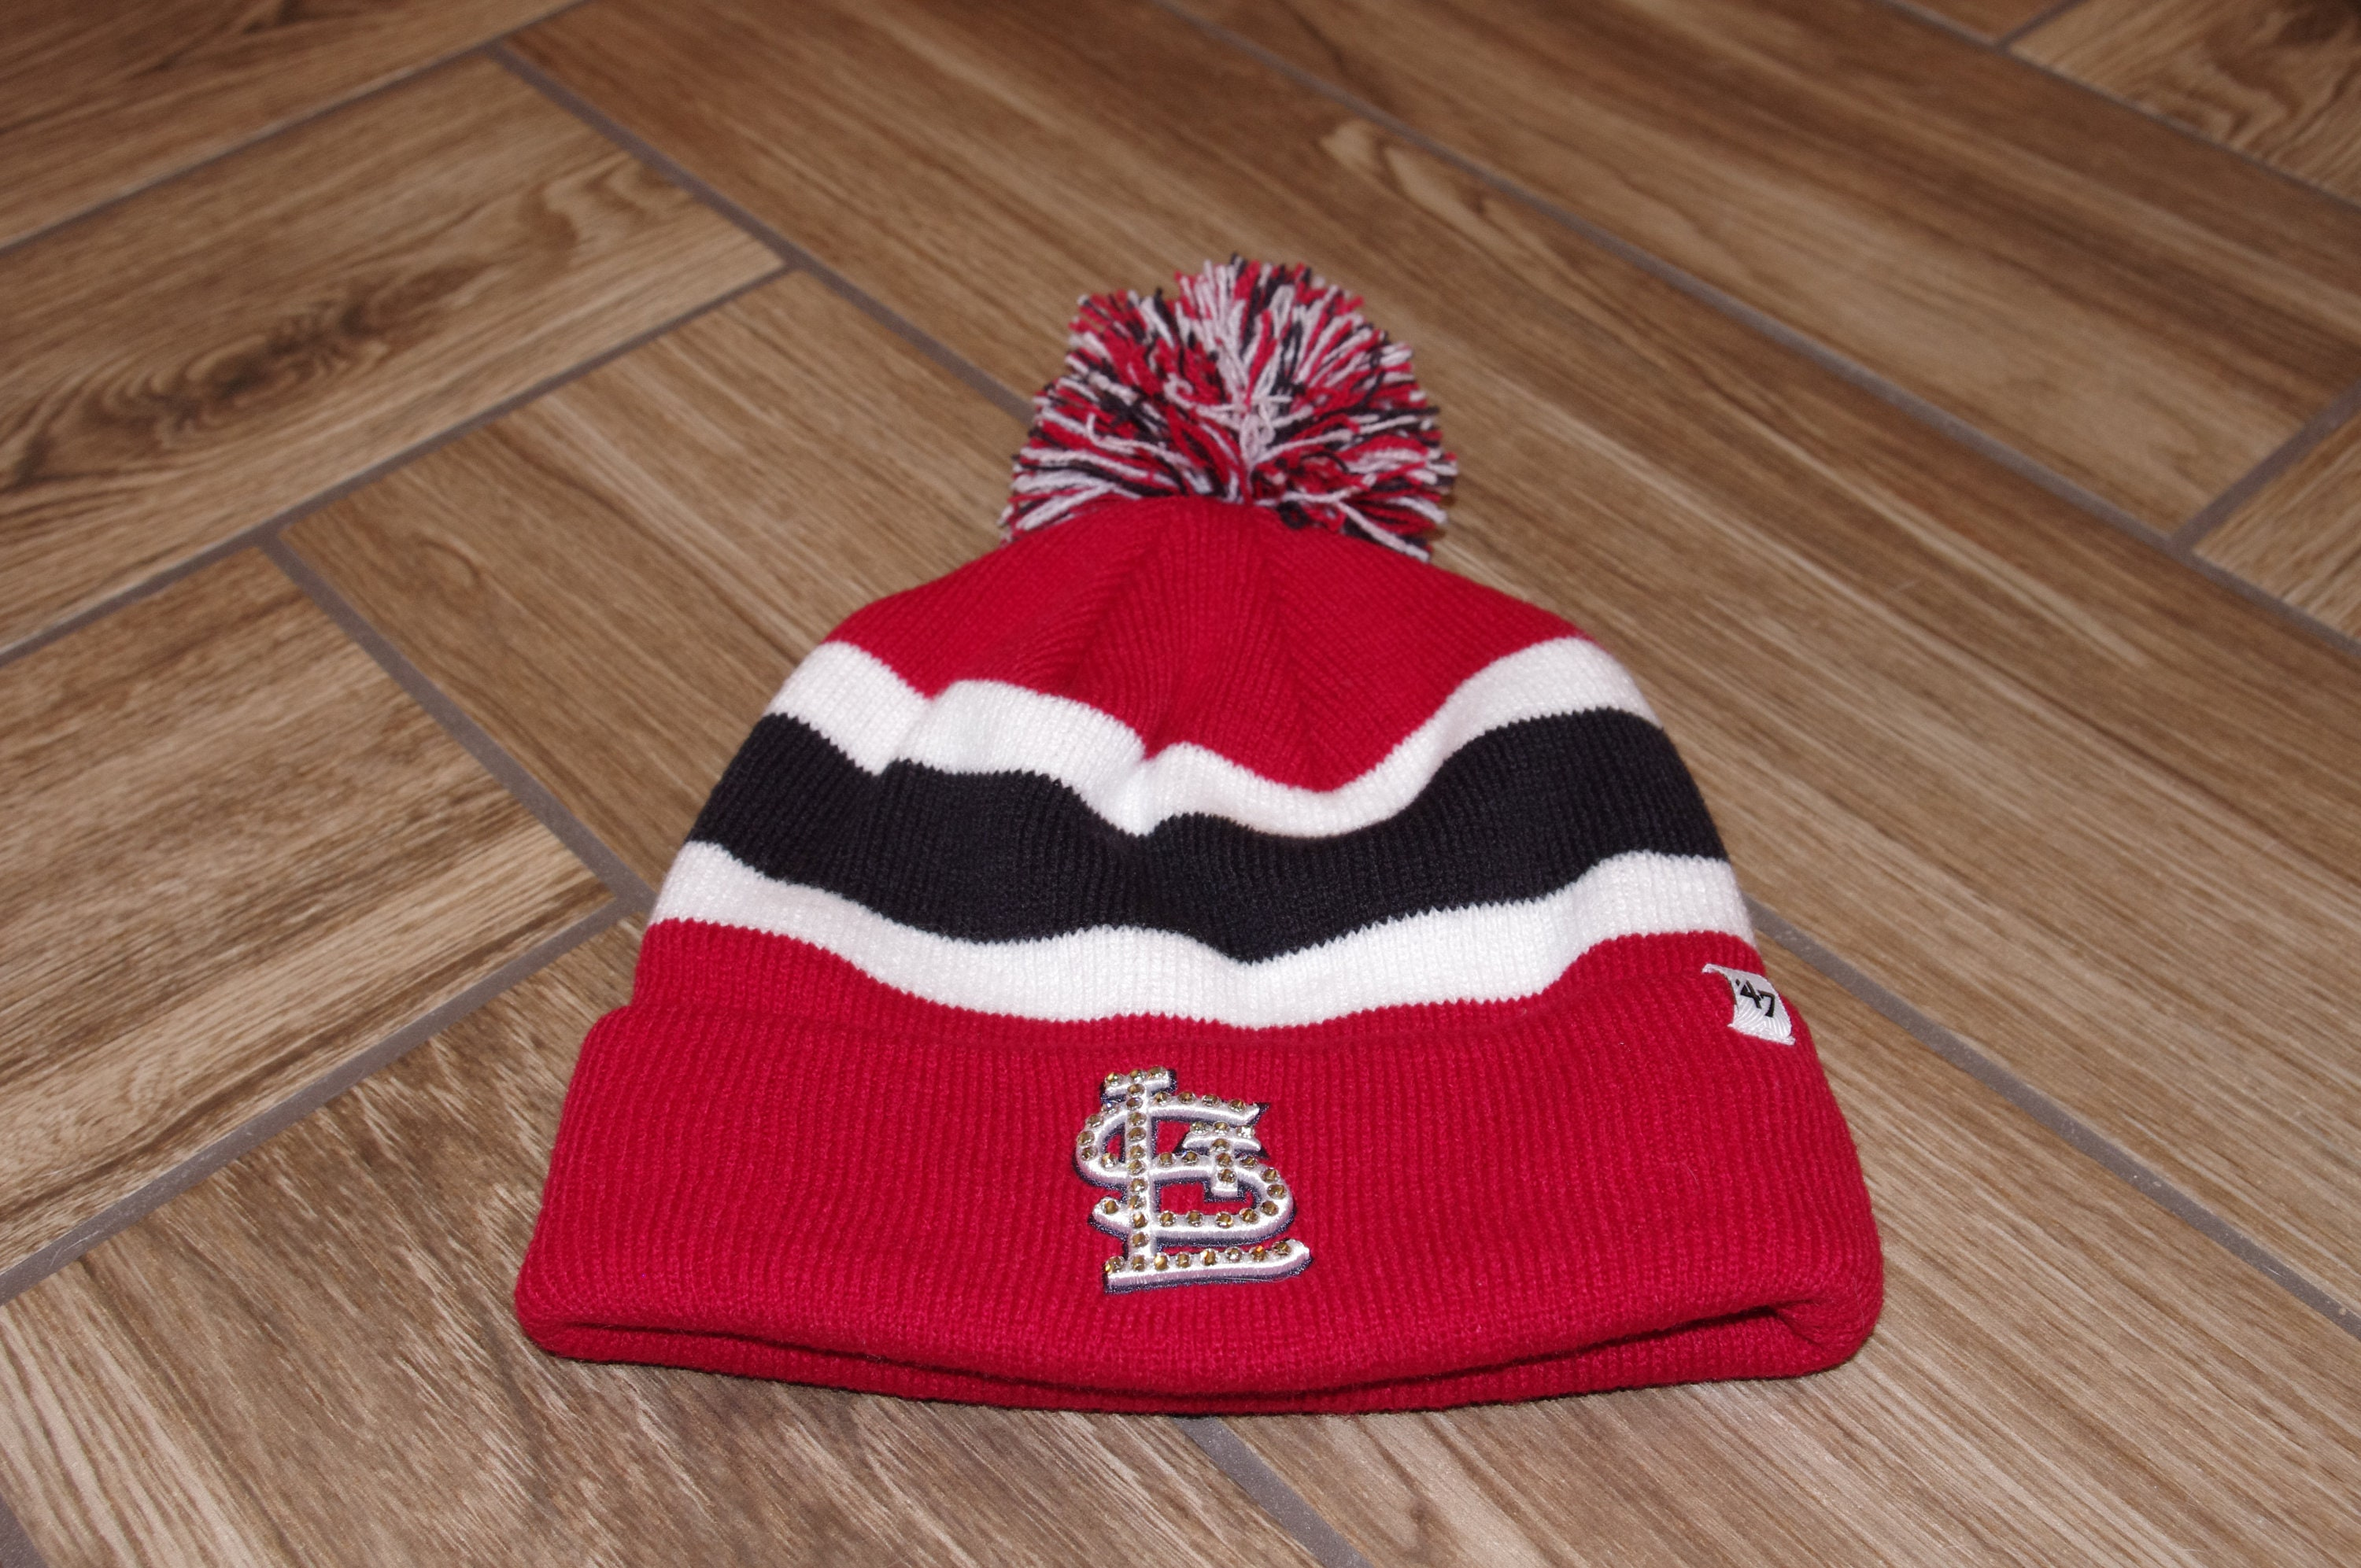 a4f2f36dae388 St. Louis Cardinals Womens knit hat St. Louis Cardinals hat